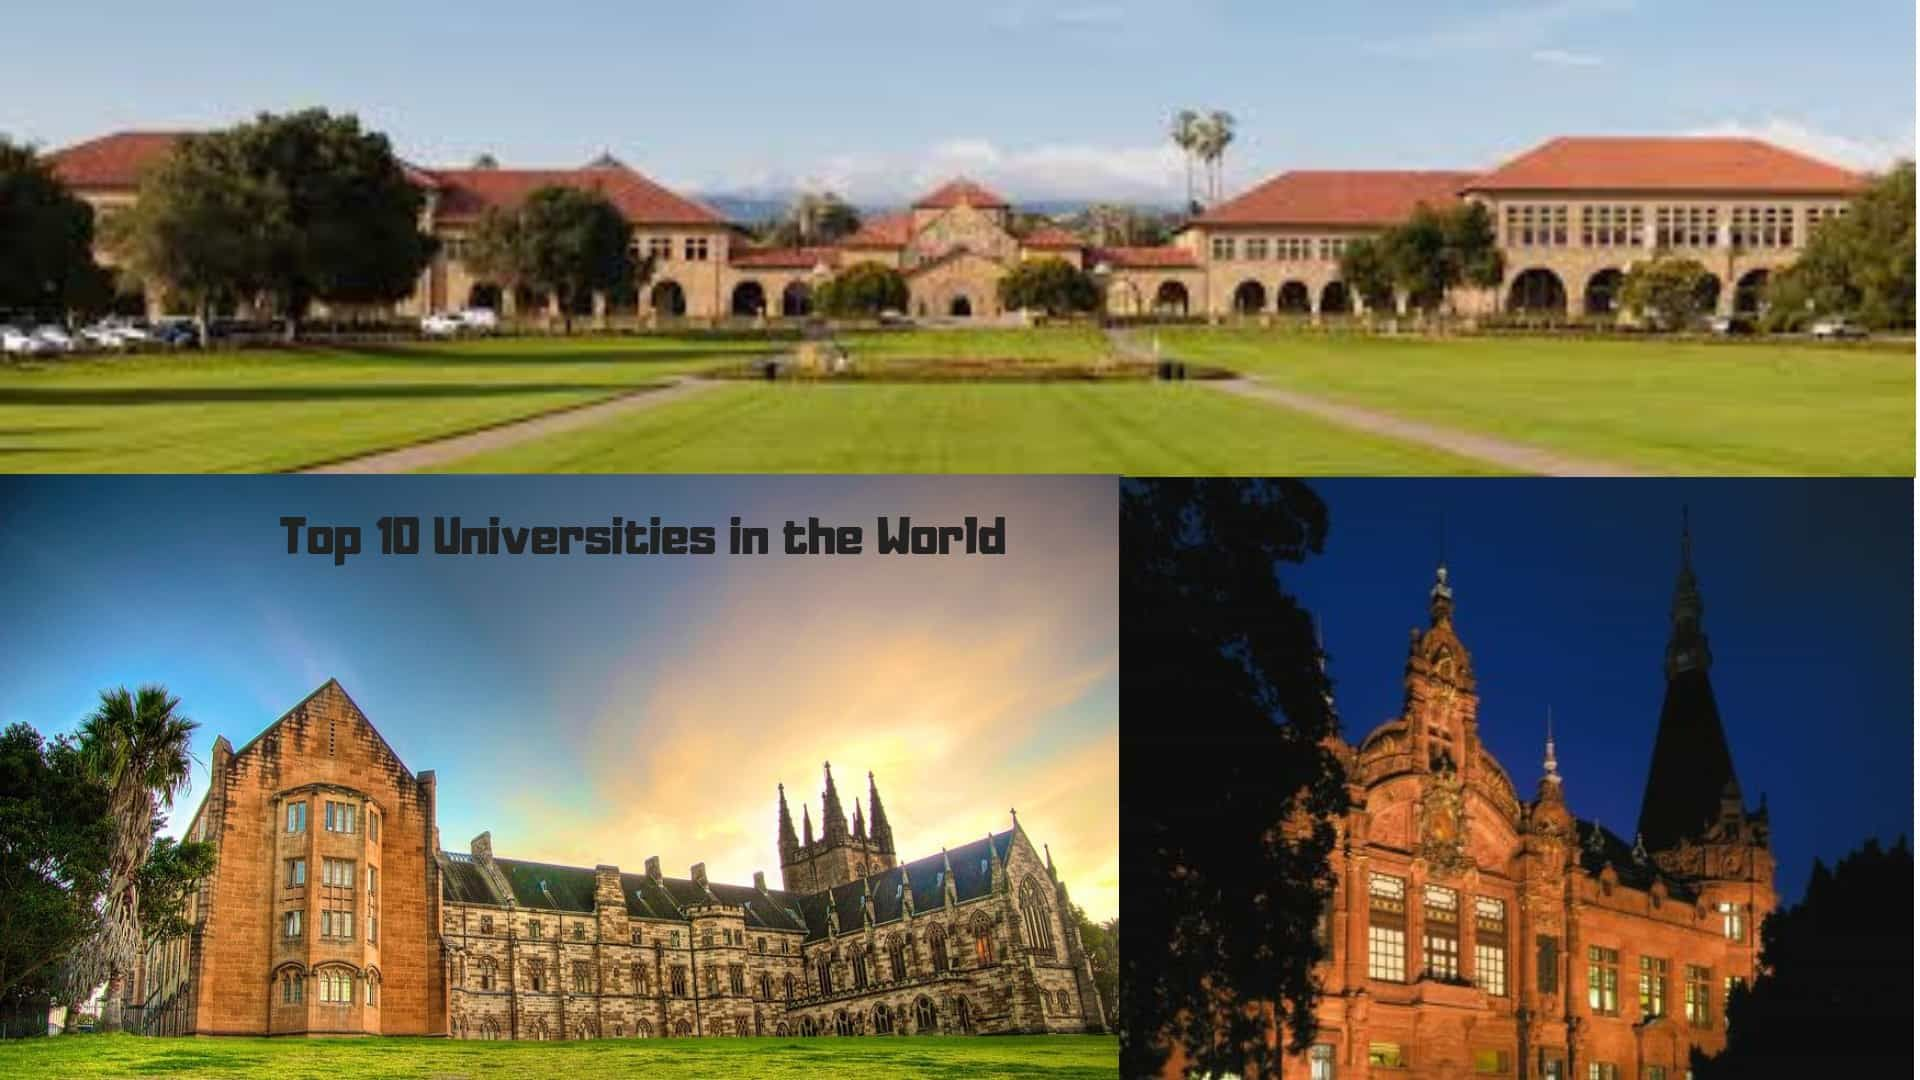 The Post World S Top 10 Universities Appeared First On Educate